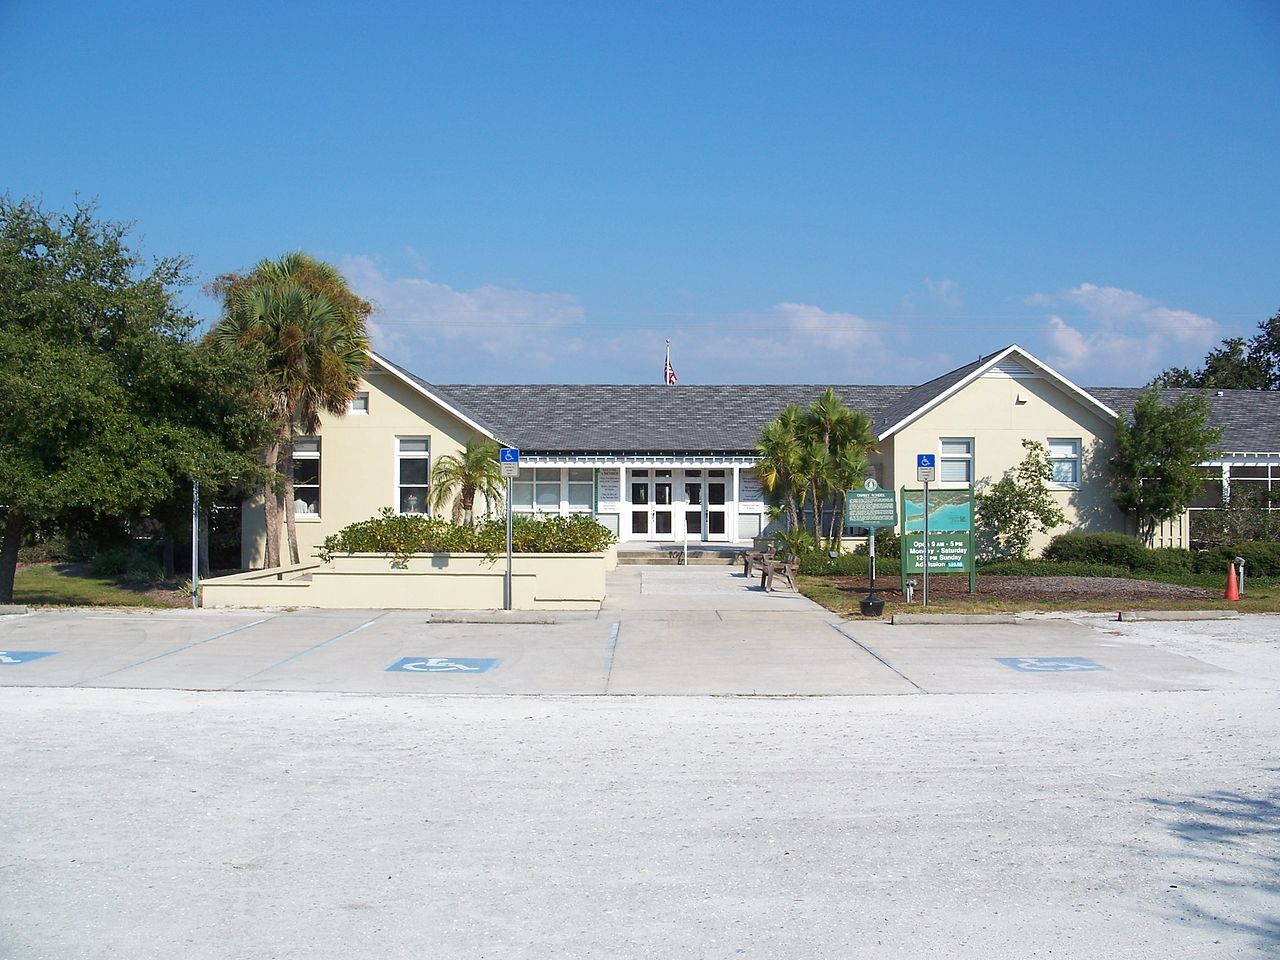 The former Osprey School is now the visitor center and museum of Historic Spanish Point.